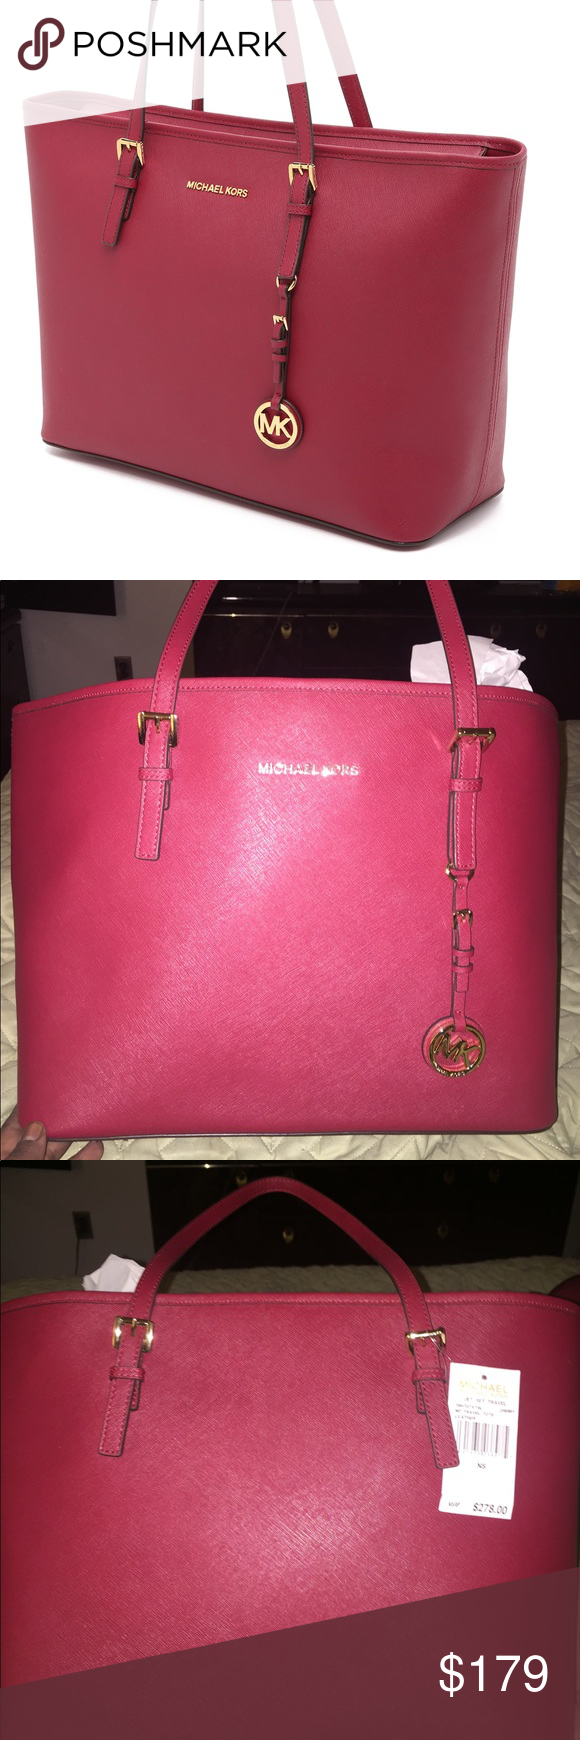 c5373a4d0a Michael Kors tote Michael Kors Jet Set tote in Cherry color. The size is  medium and it has never been used. The dust bag is not included.